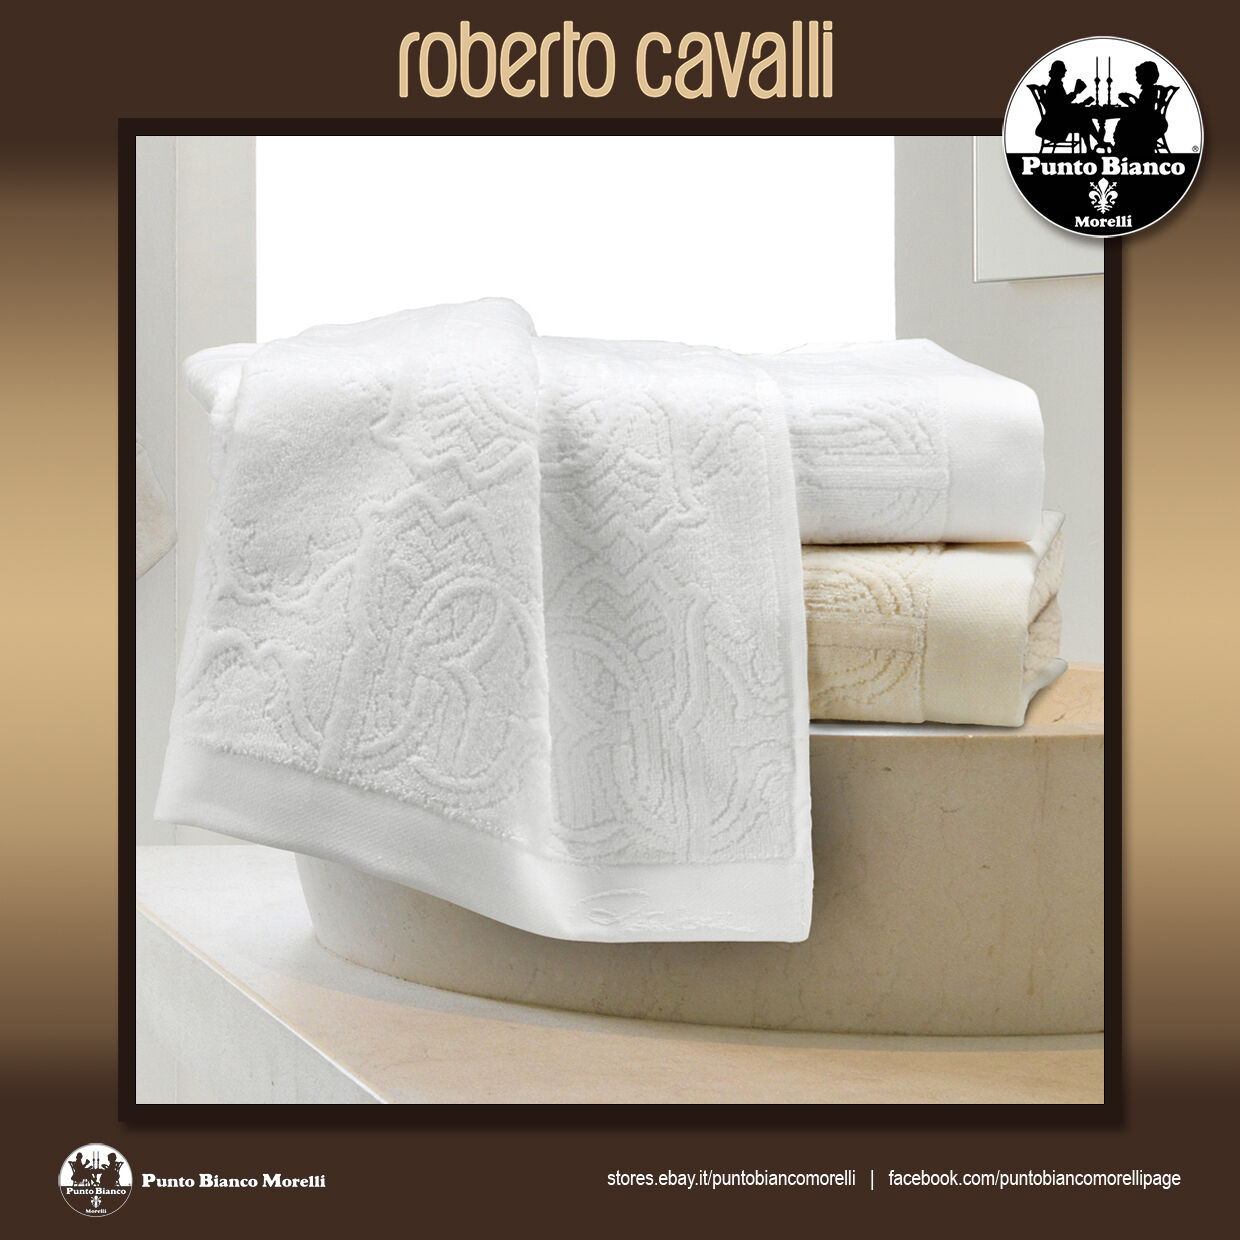 ROBERTO CAVALLI | LOGO Set spugna viso + ospite - Set terry towel 2 pieces